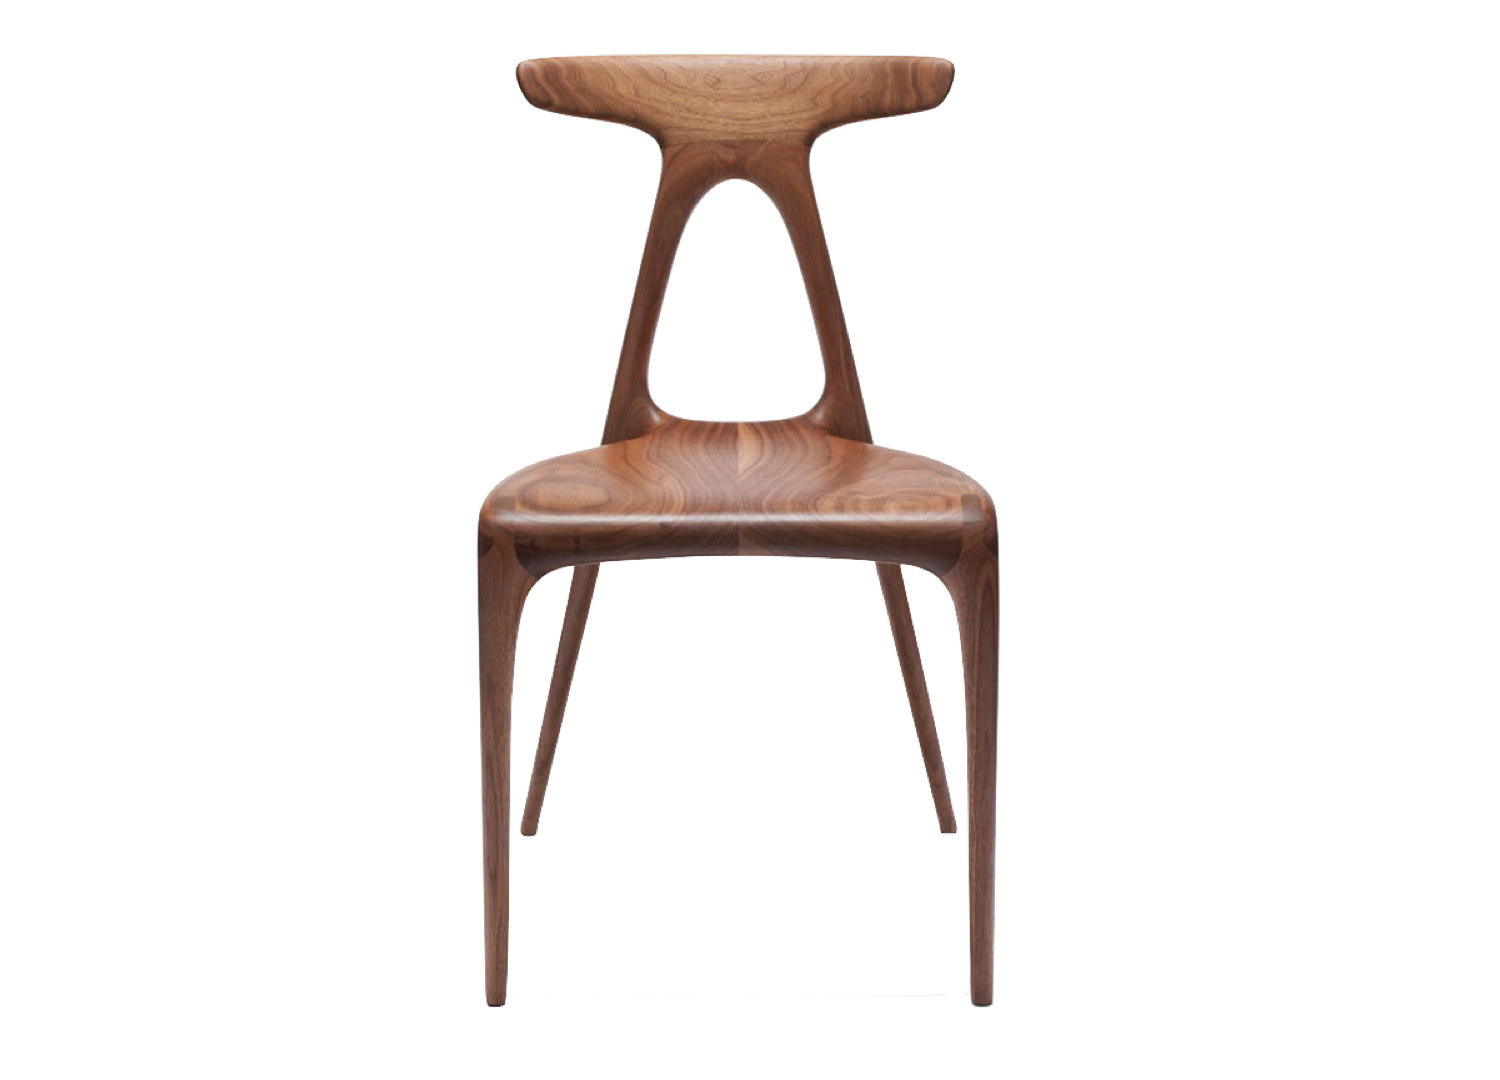 est living living edge made in ratio alpha chair 01